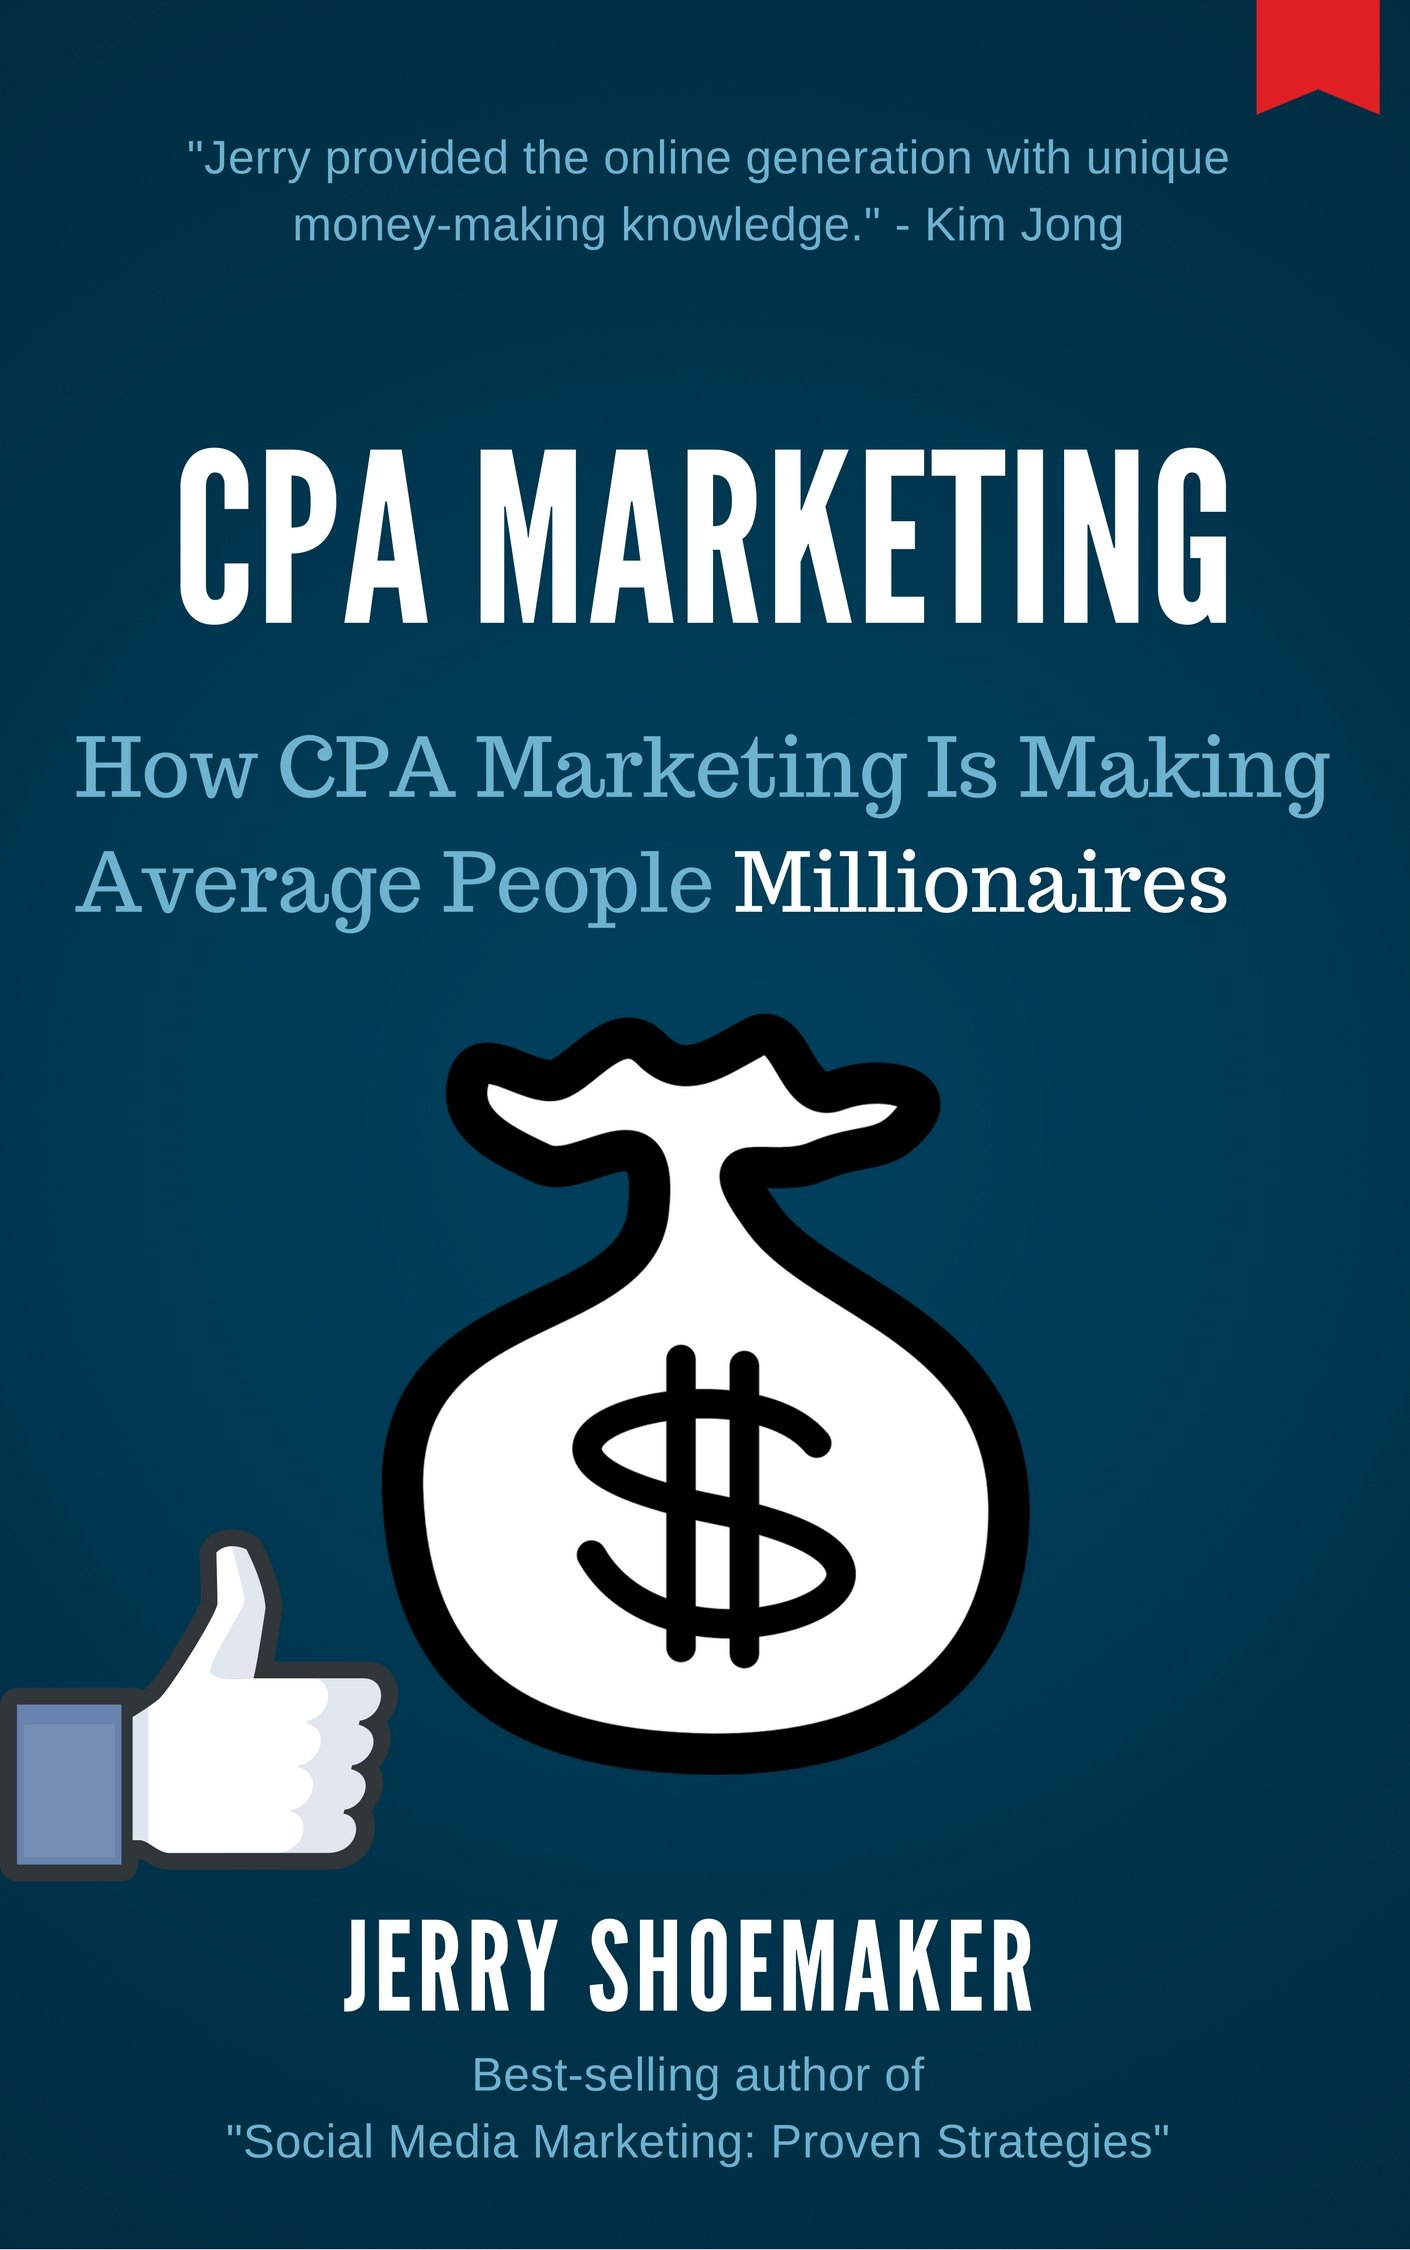 CPA Marketing: How CPA Marketing is Making Average People Millionaires